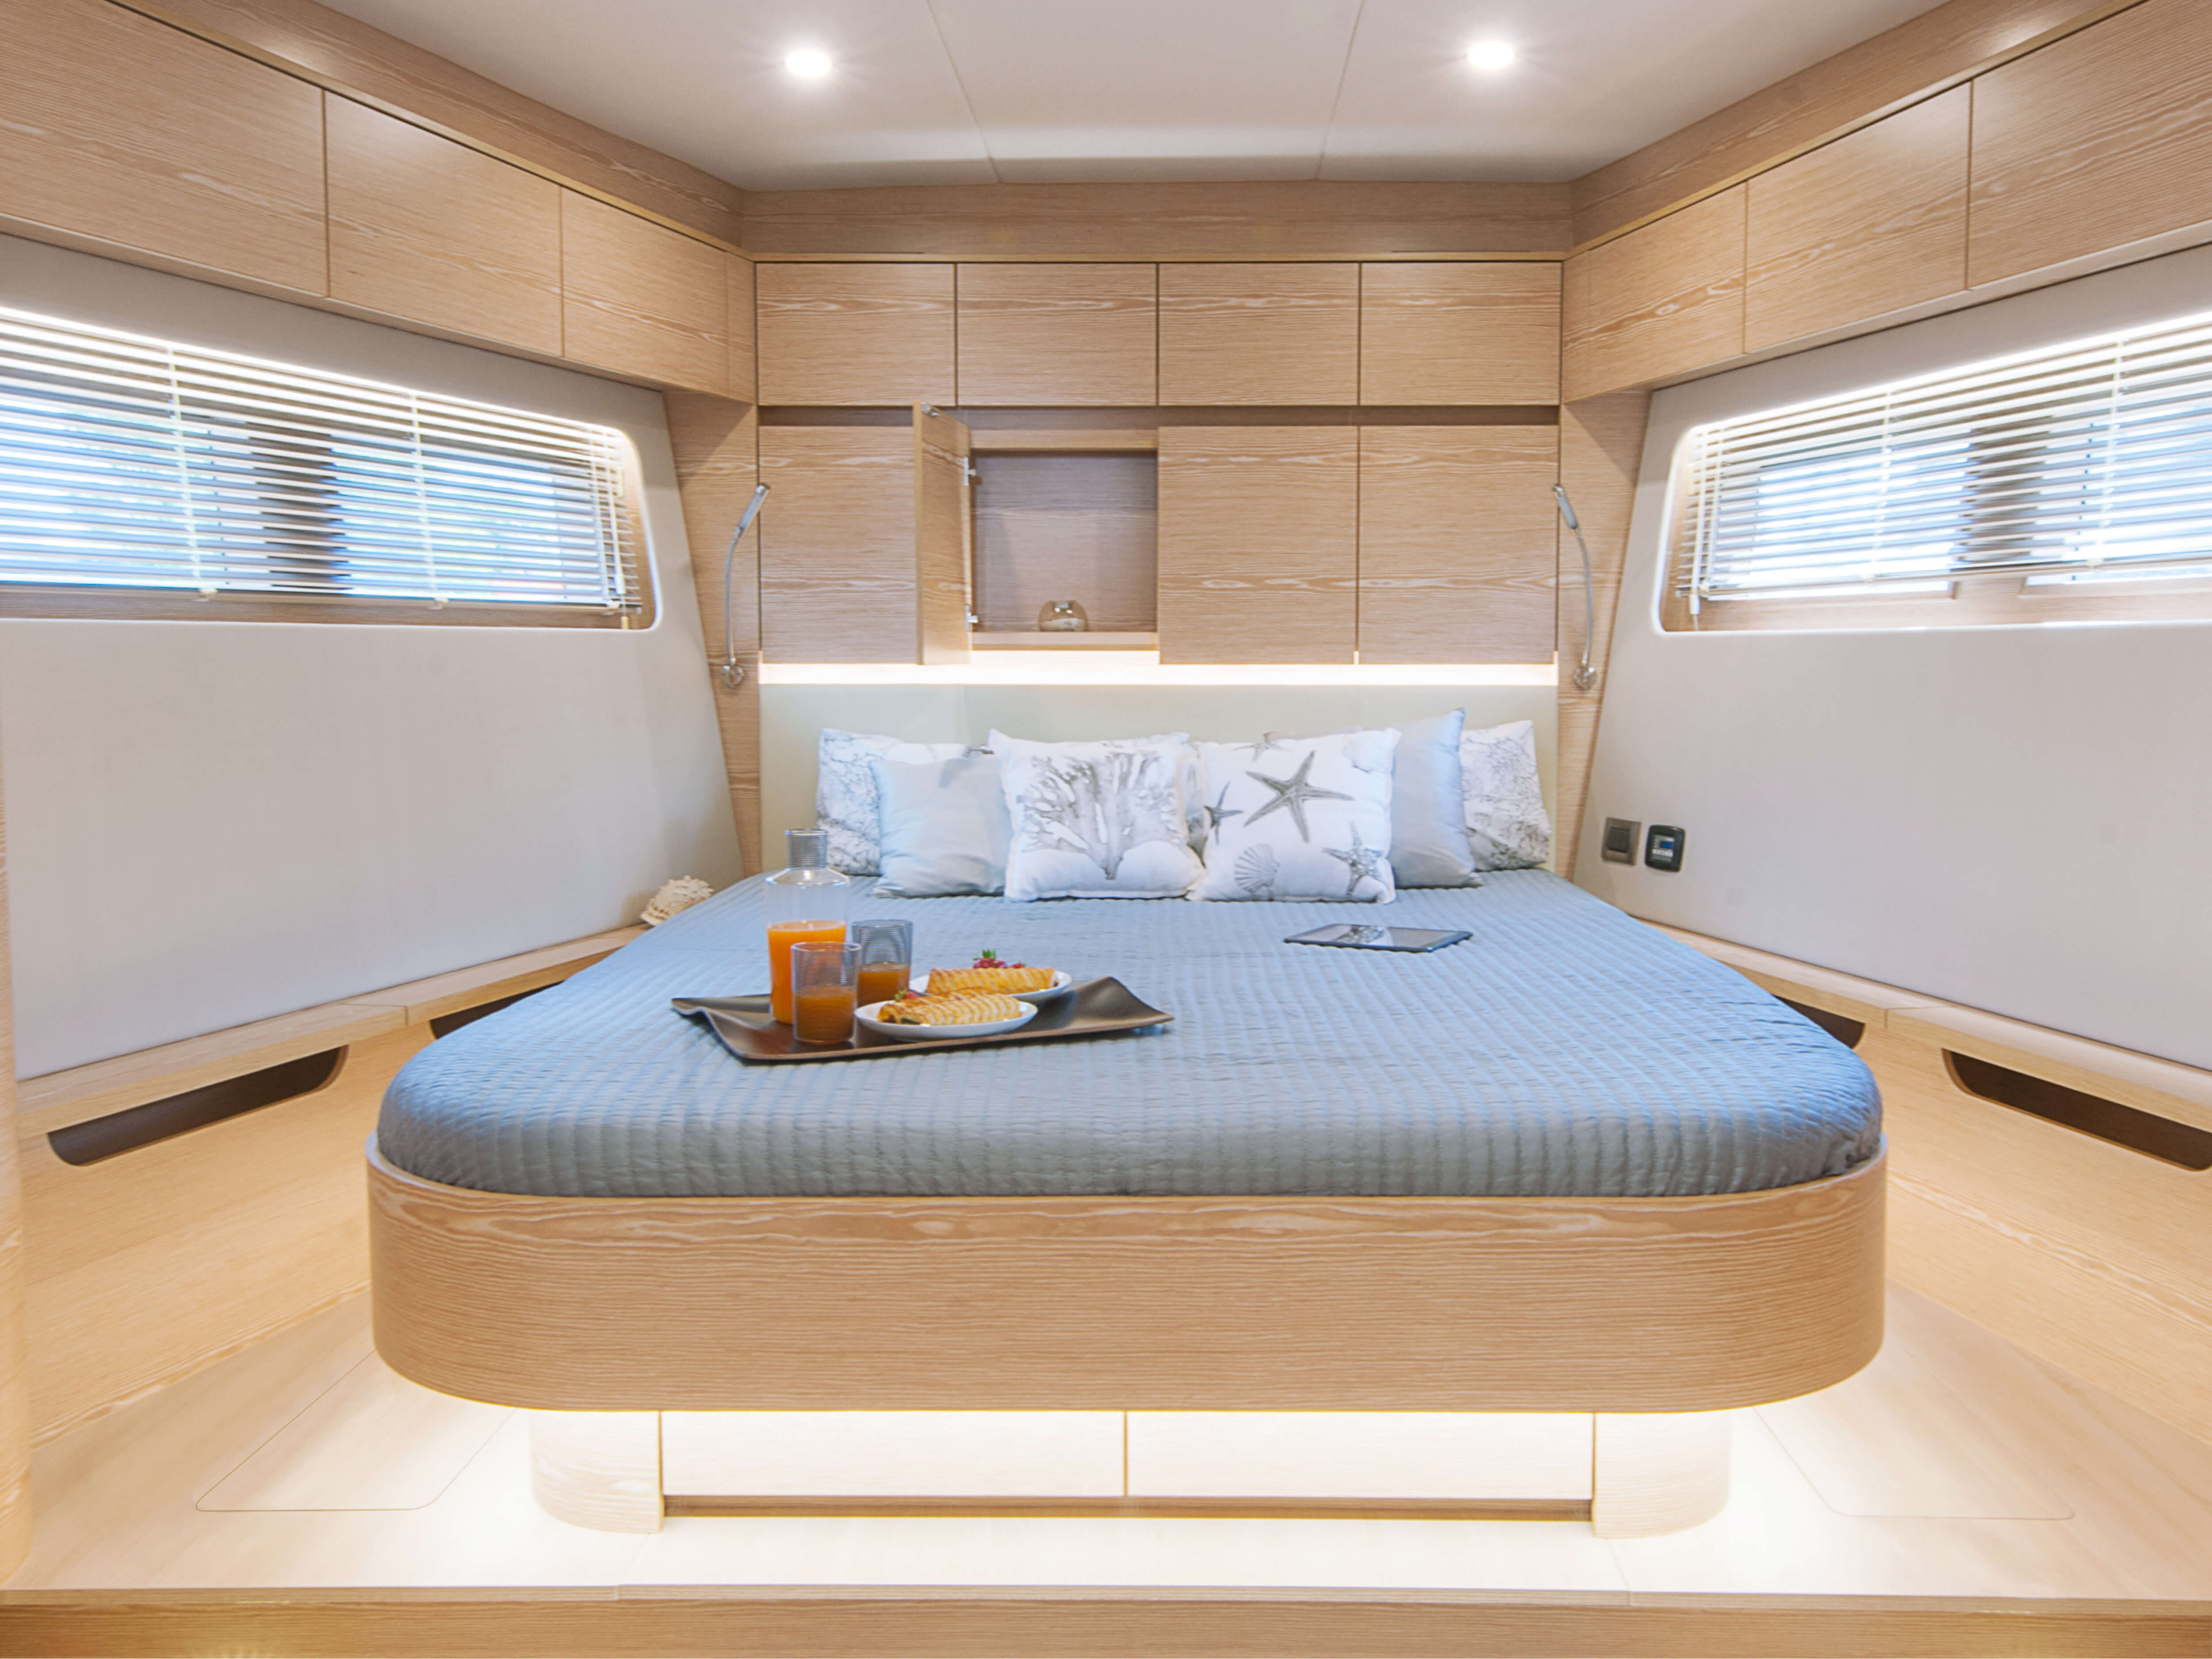 Hanse 675 | double berth, storage compartments | Hanse